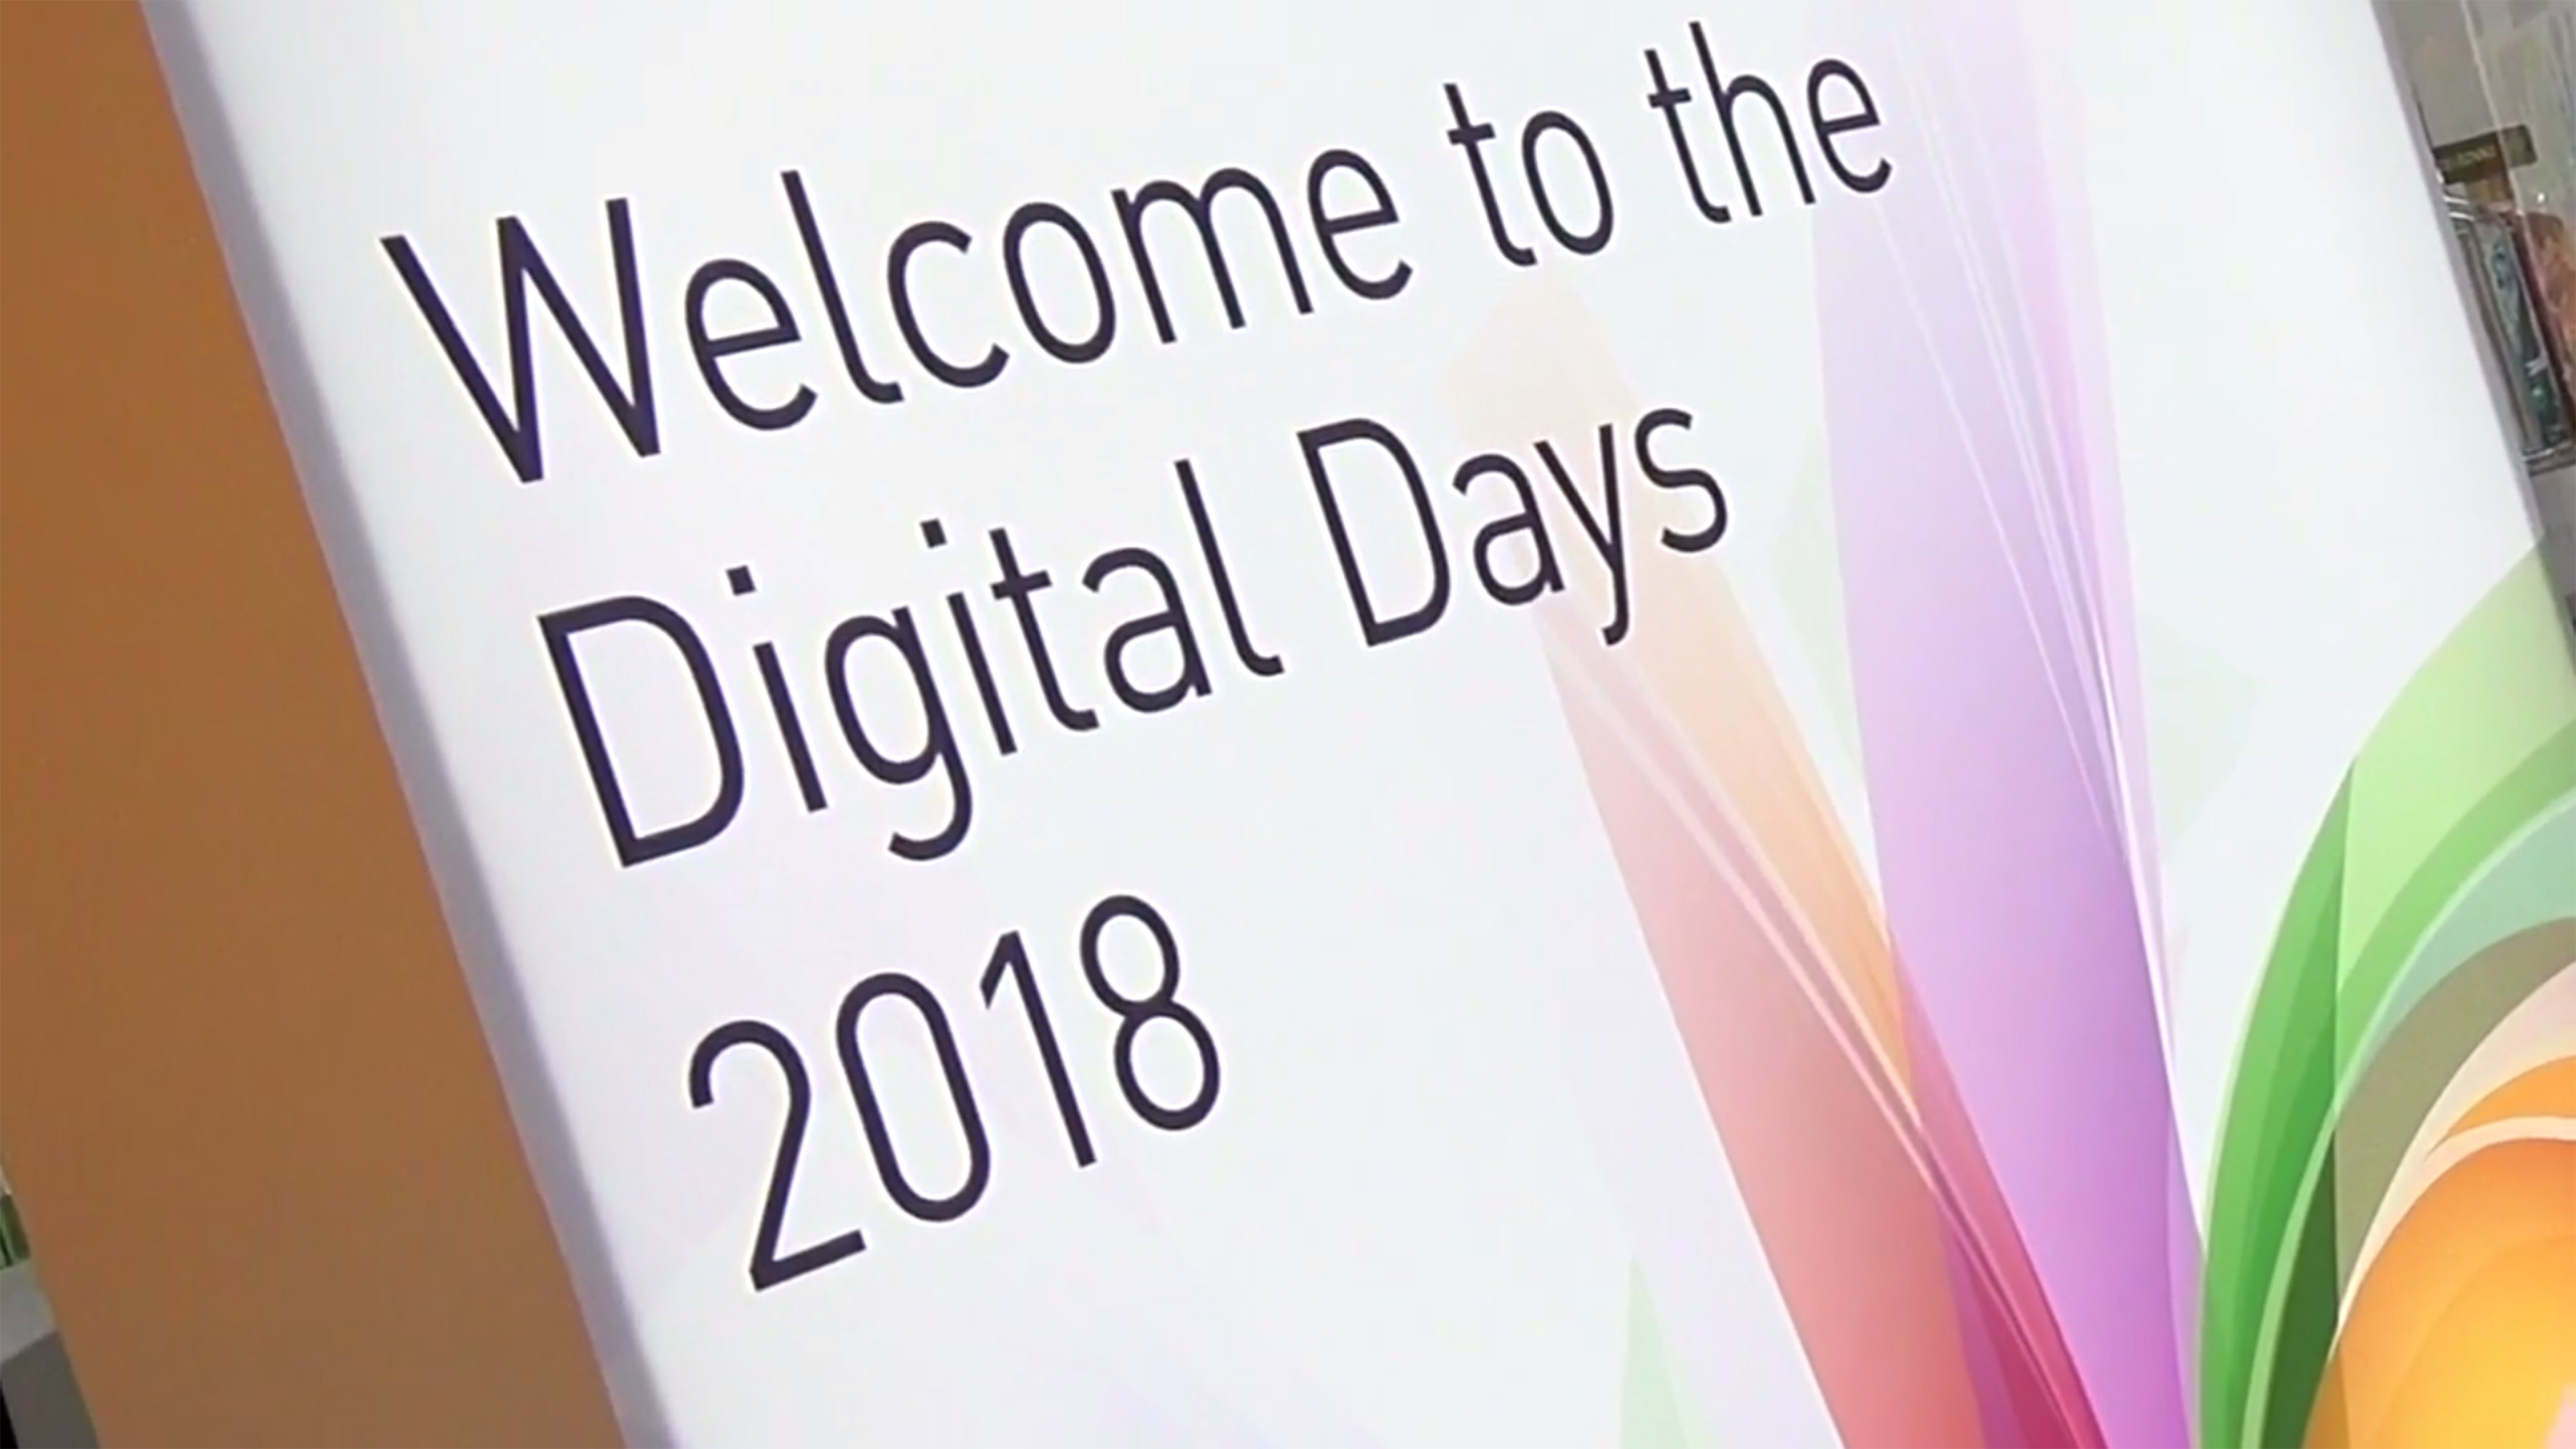 Durst Label Digital Days 2018